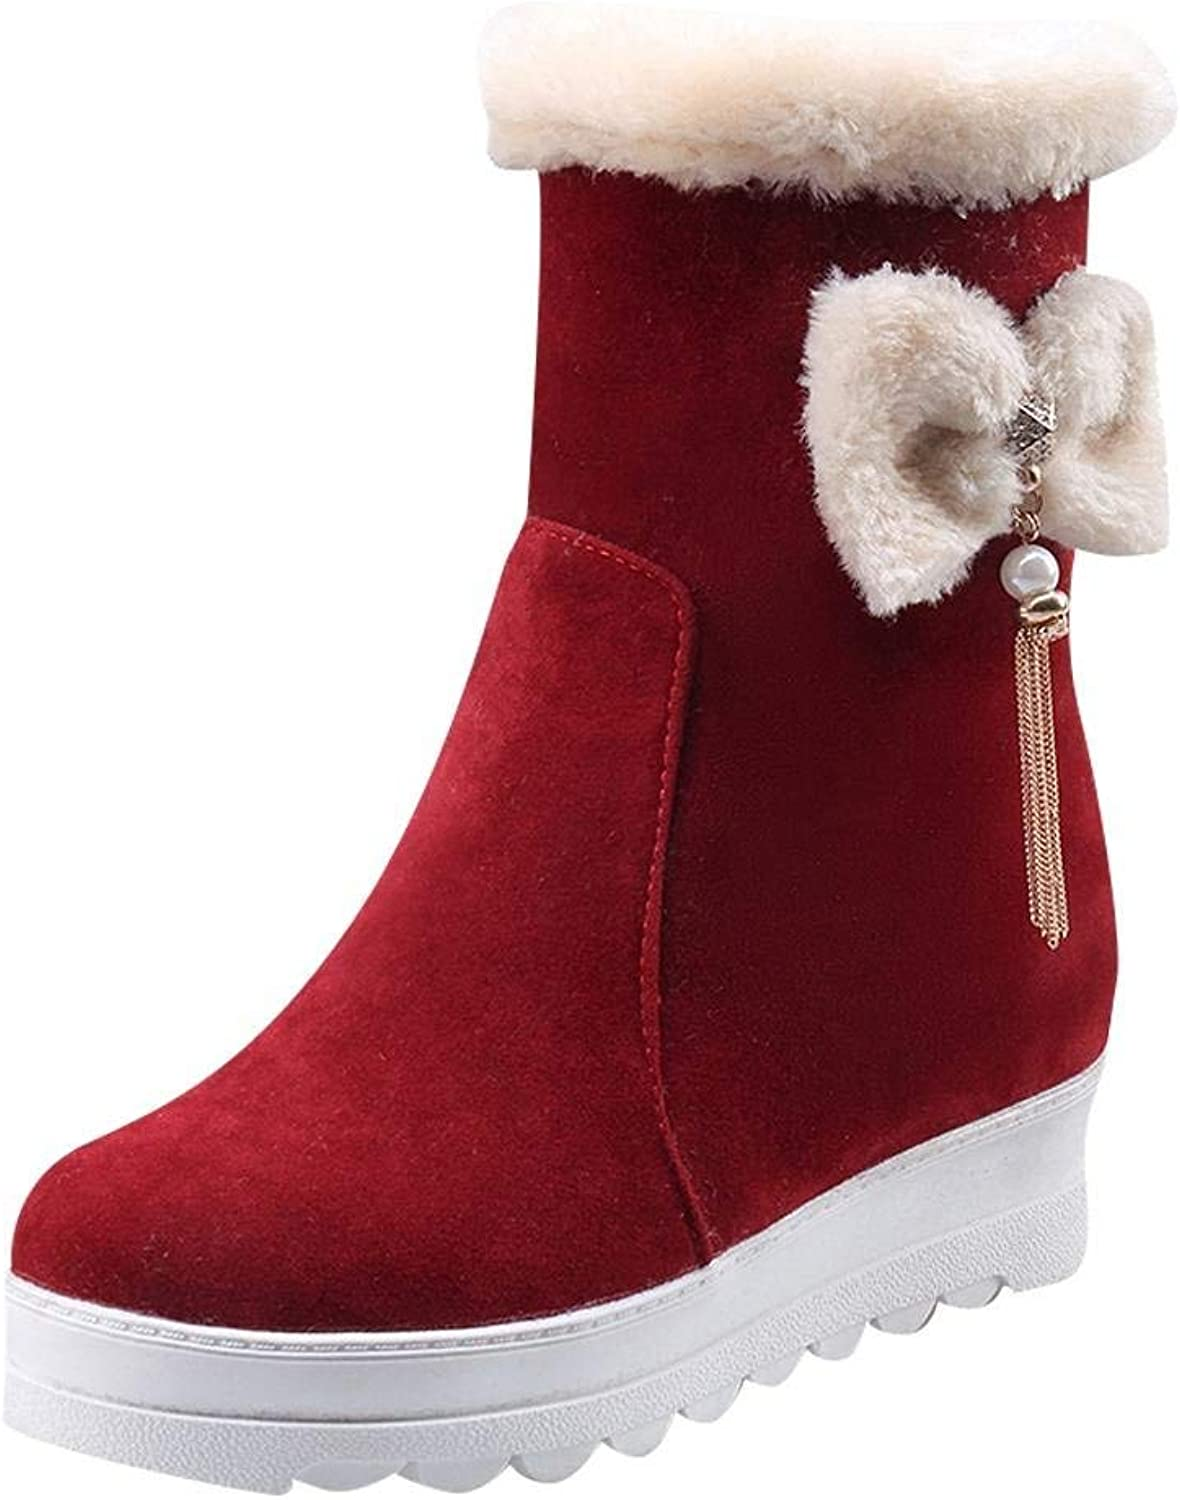 Gedigits Women's Bows Platform Wedge Velvet Lining Winter Boots Wine Red 7.5 M US